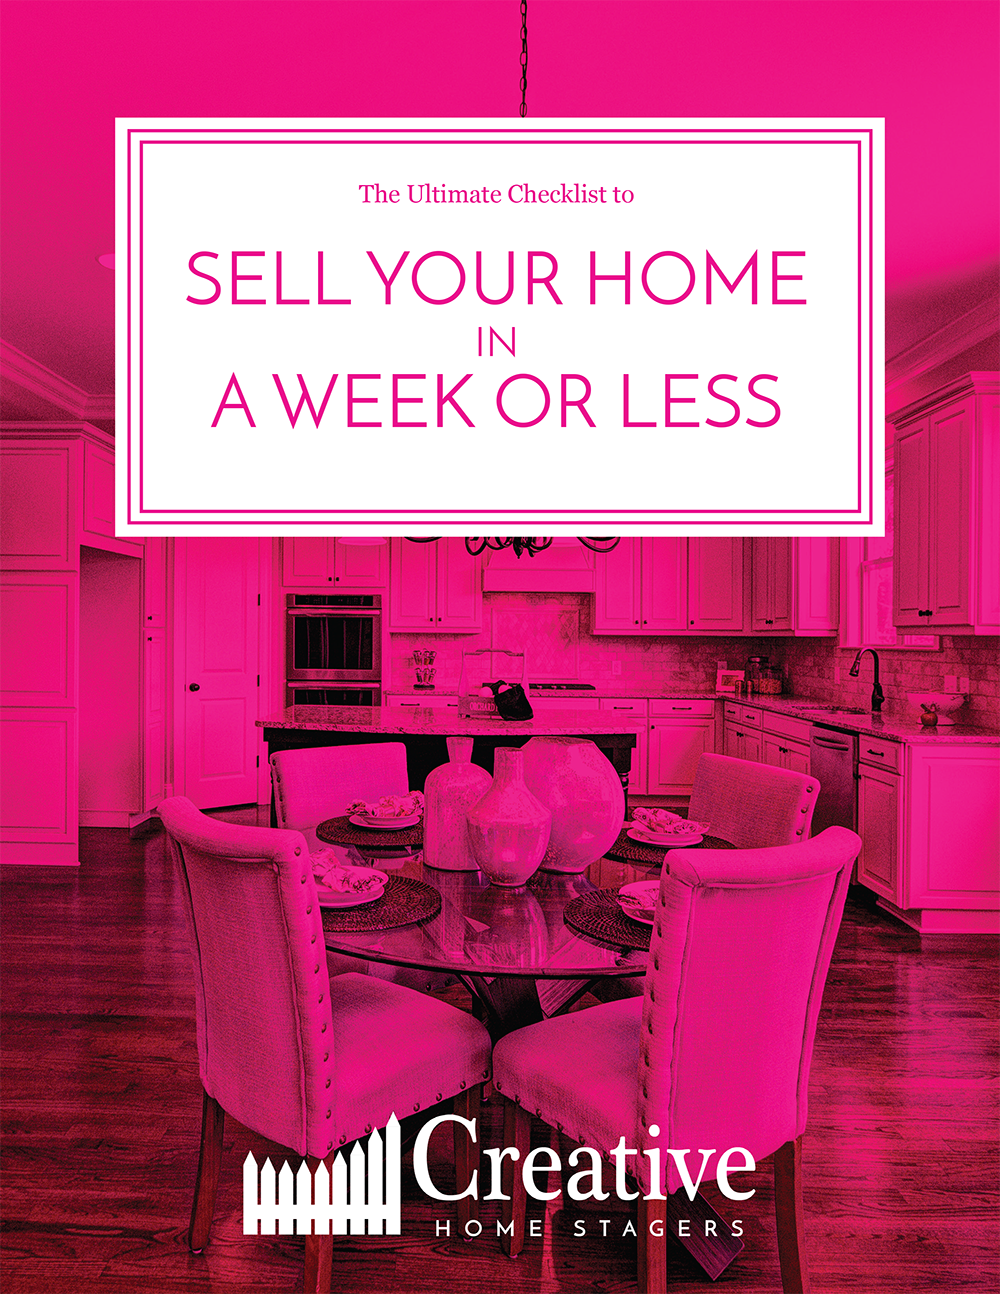 sell your home in a week or less